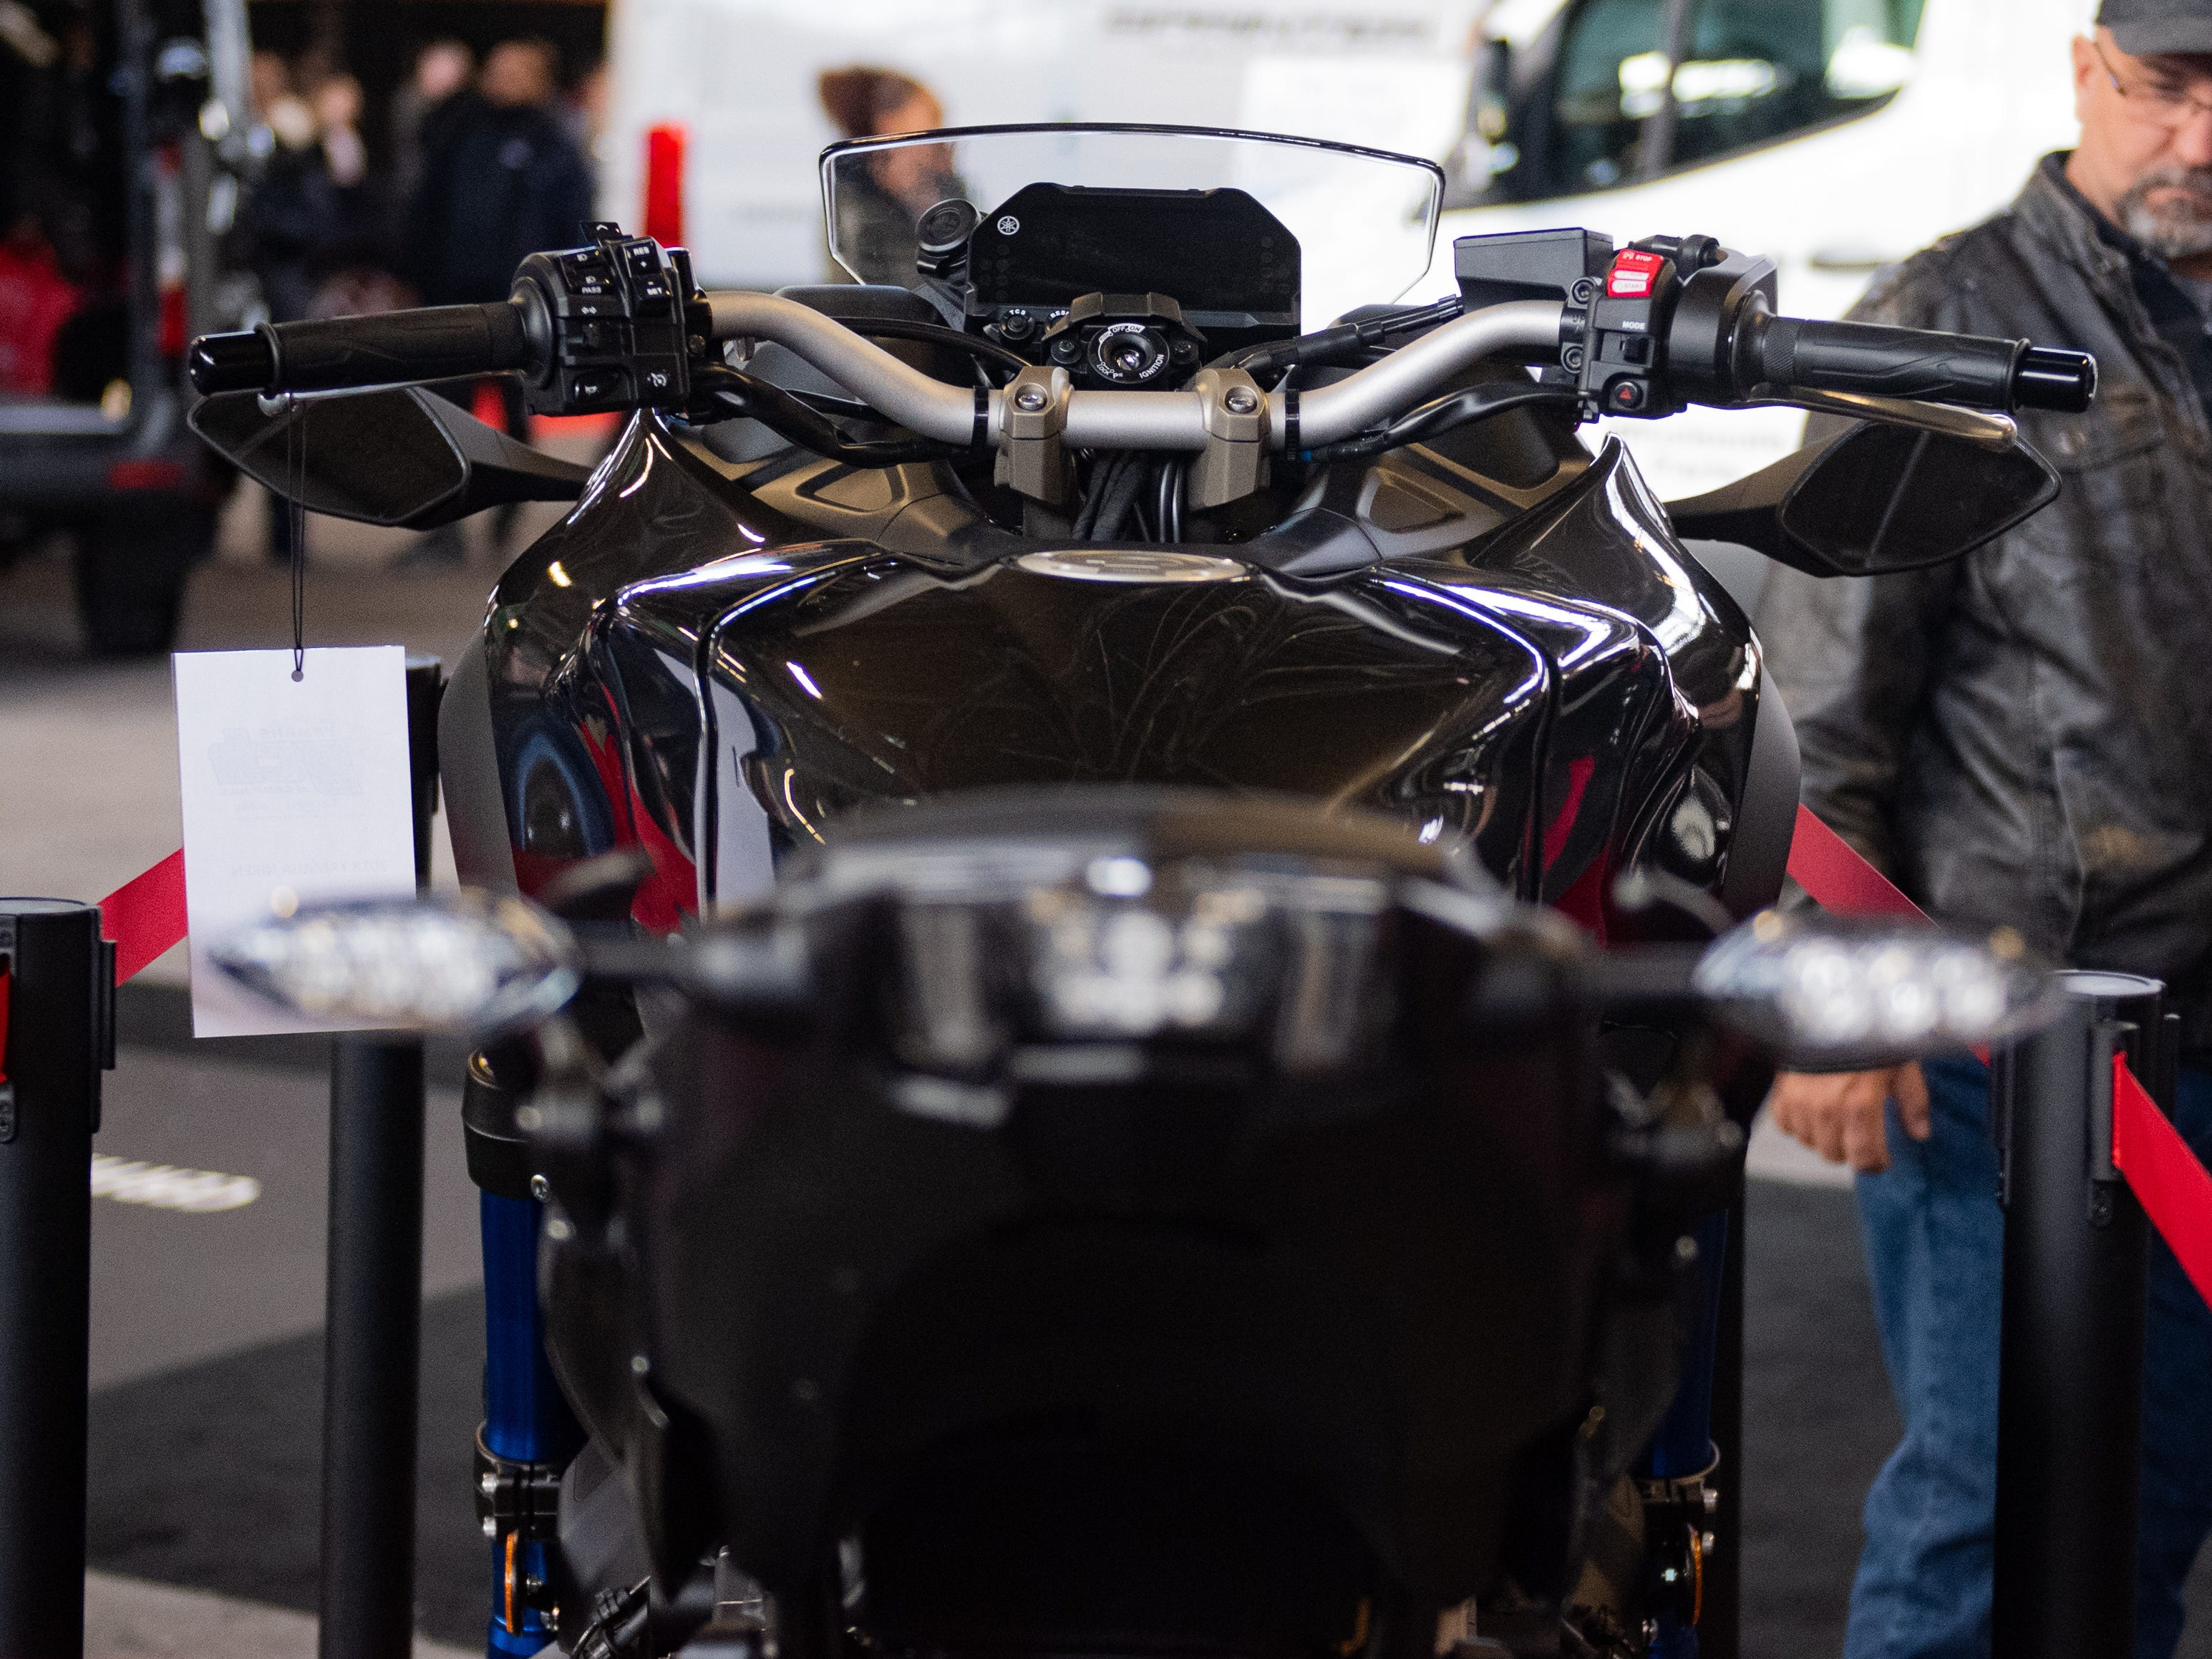 The 2019 Pennsylvania Auto Show has a section with motorcycles and dirt bikes, Saturday, January 26, 2019 at the Pennsylvania Farm Show Complex & Expo Center. The auto show continues on Sunday from 10 a.m. to 5 p.m.